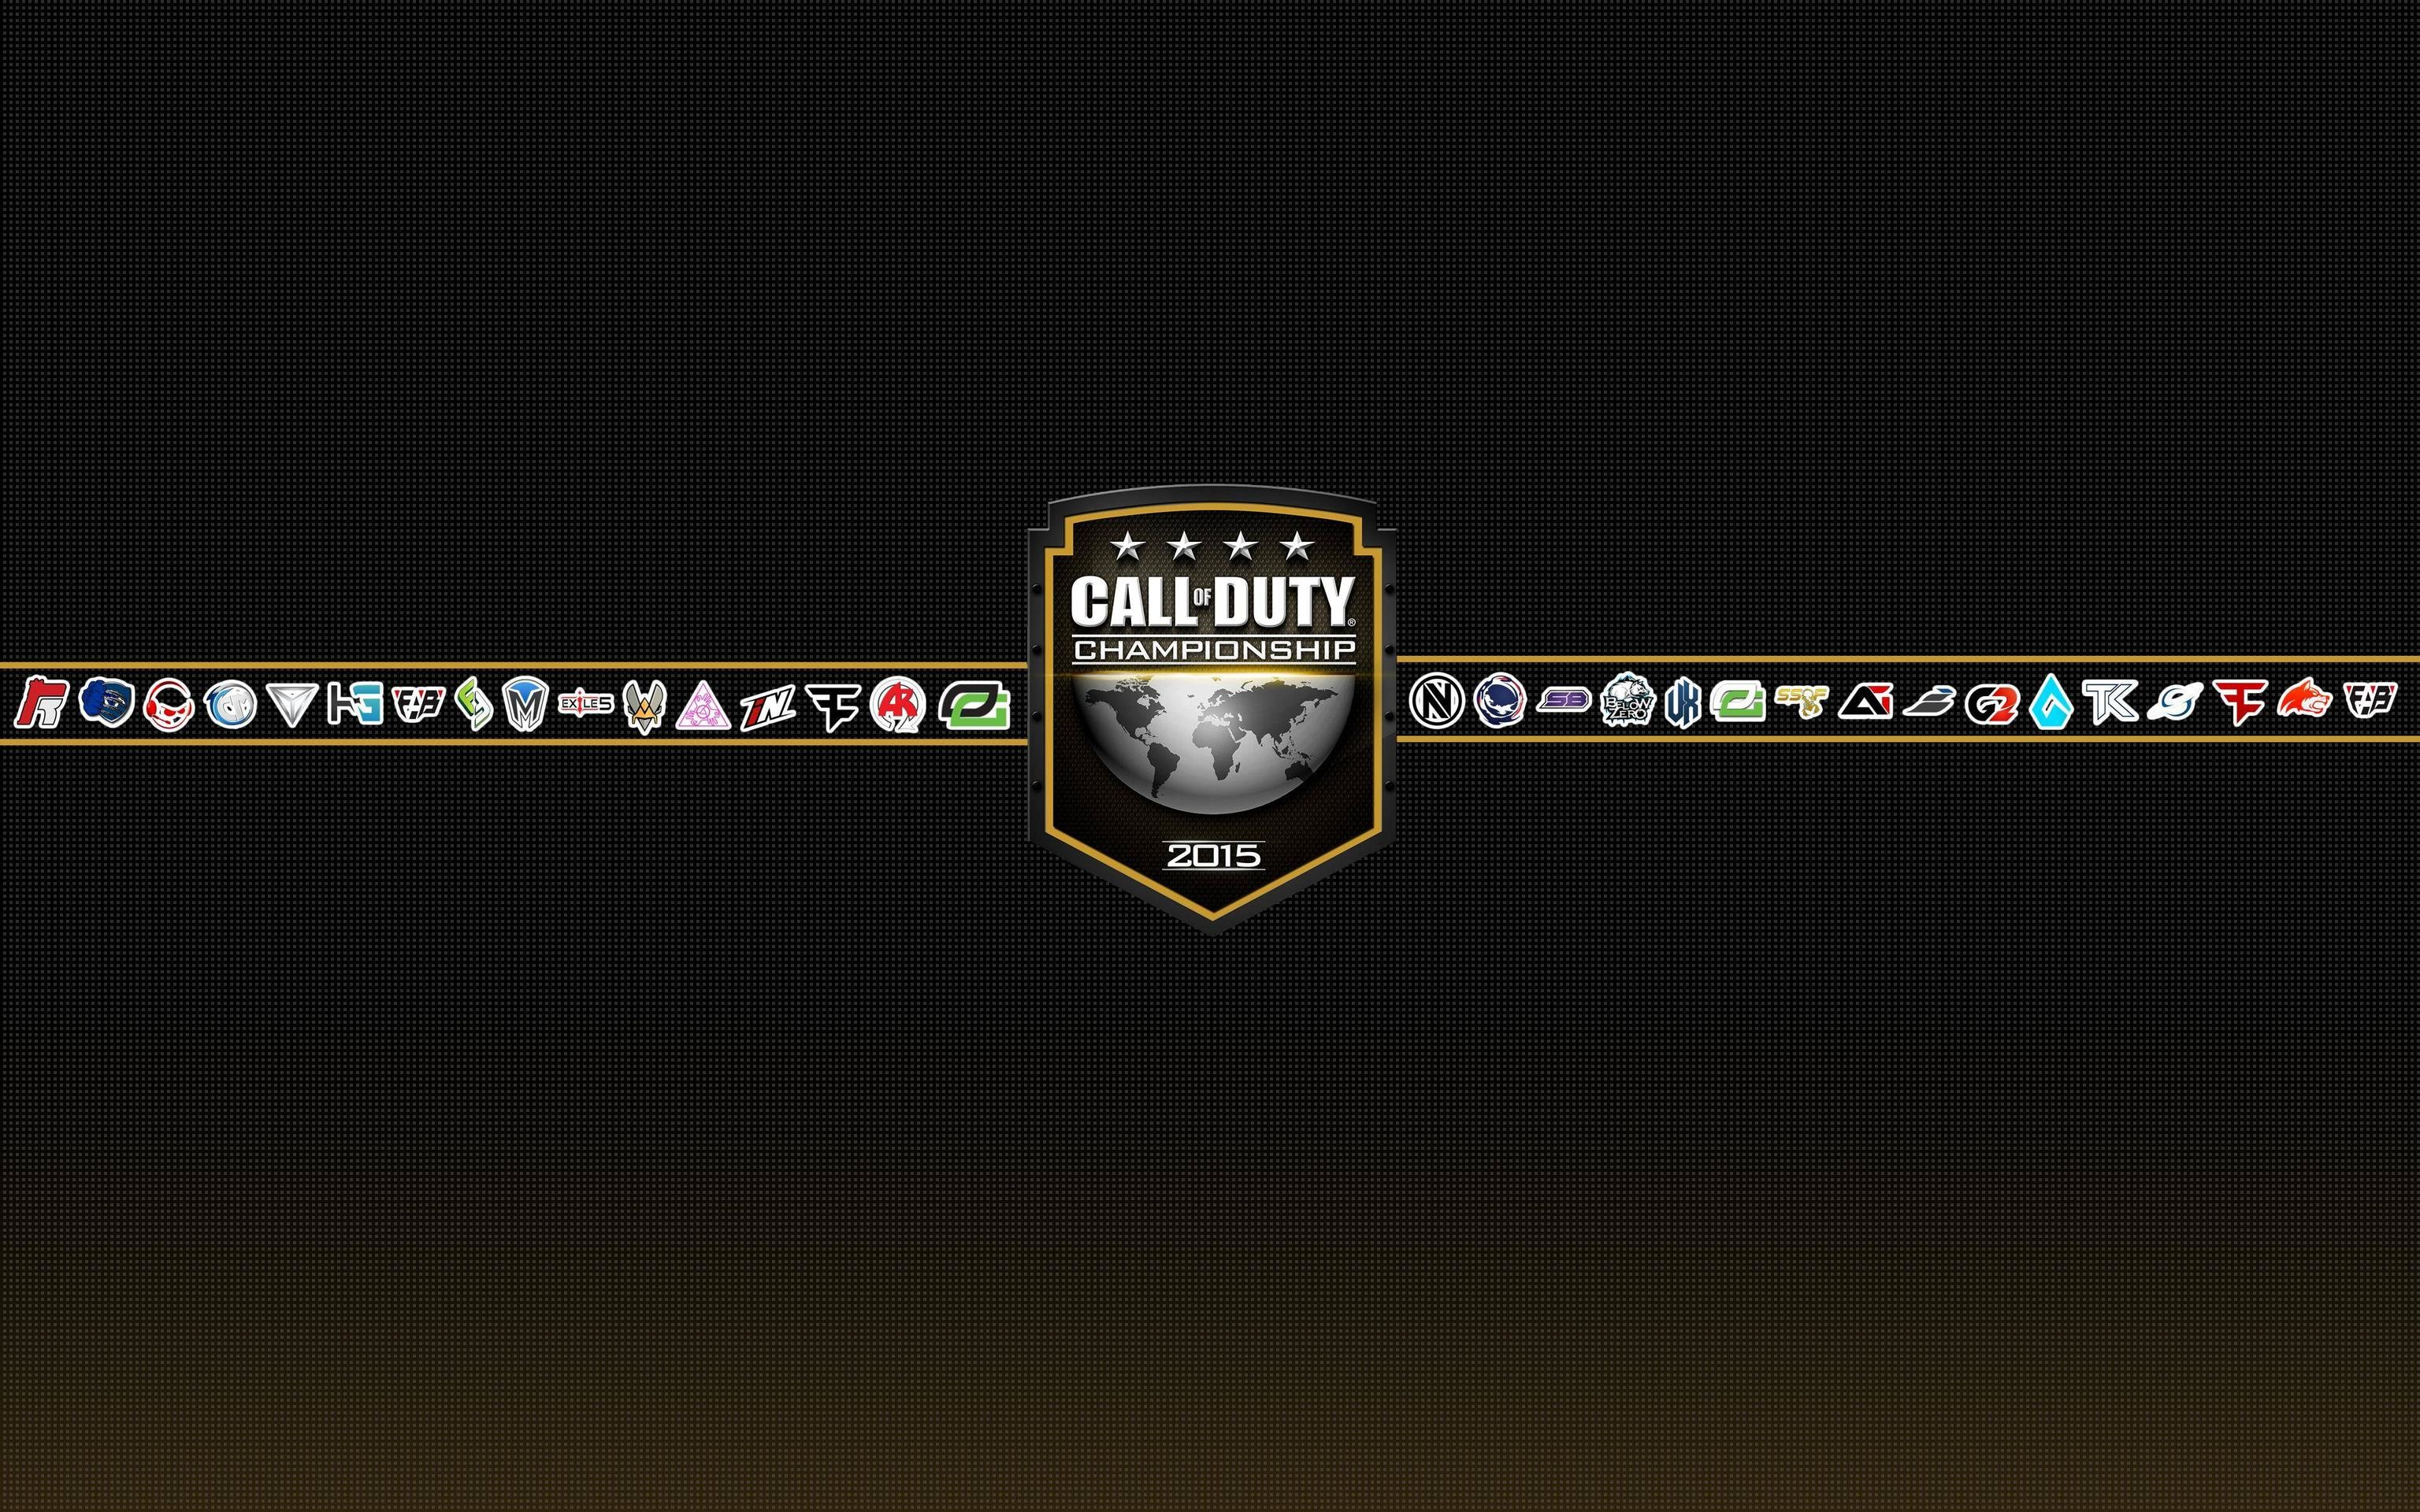 Res: 3072x1920, Quick CoD Champs wallpaper for y'all : CoDCompetitive